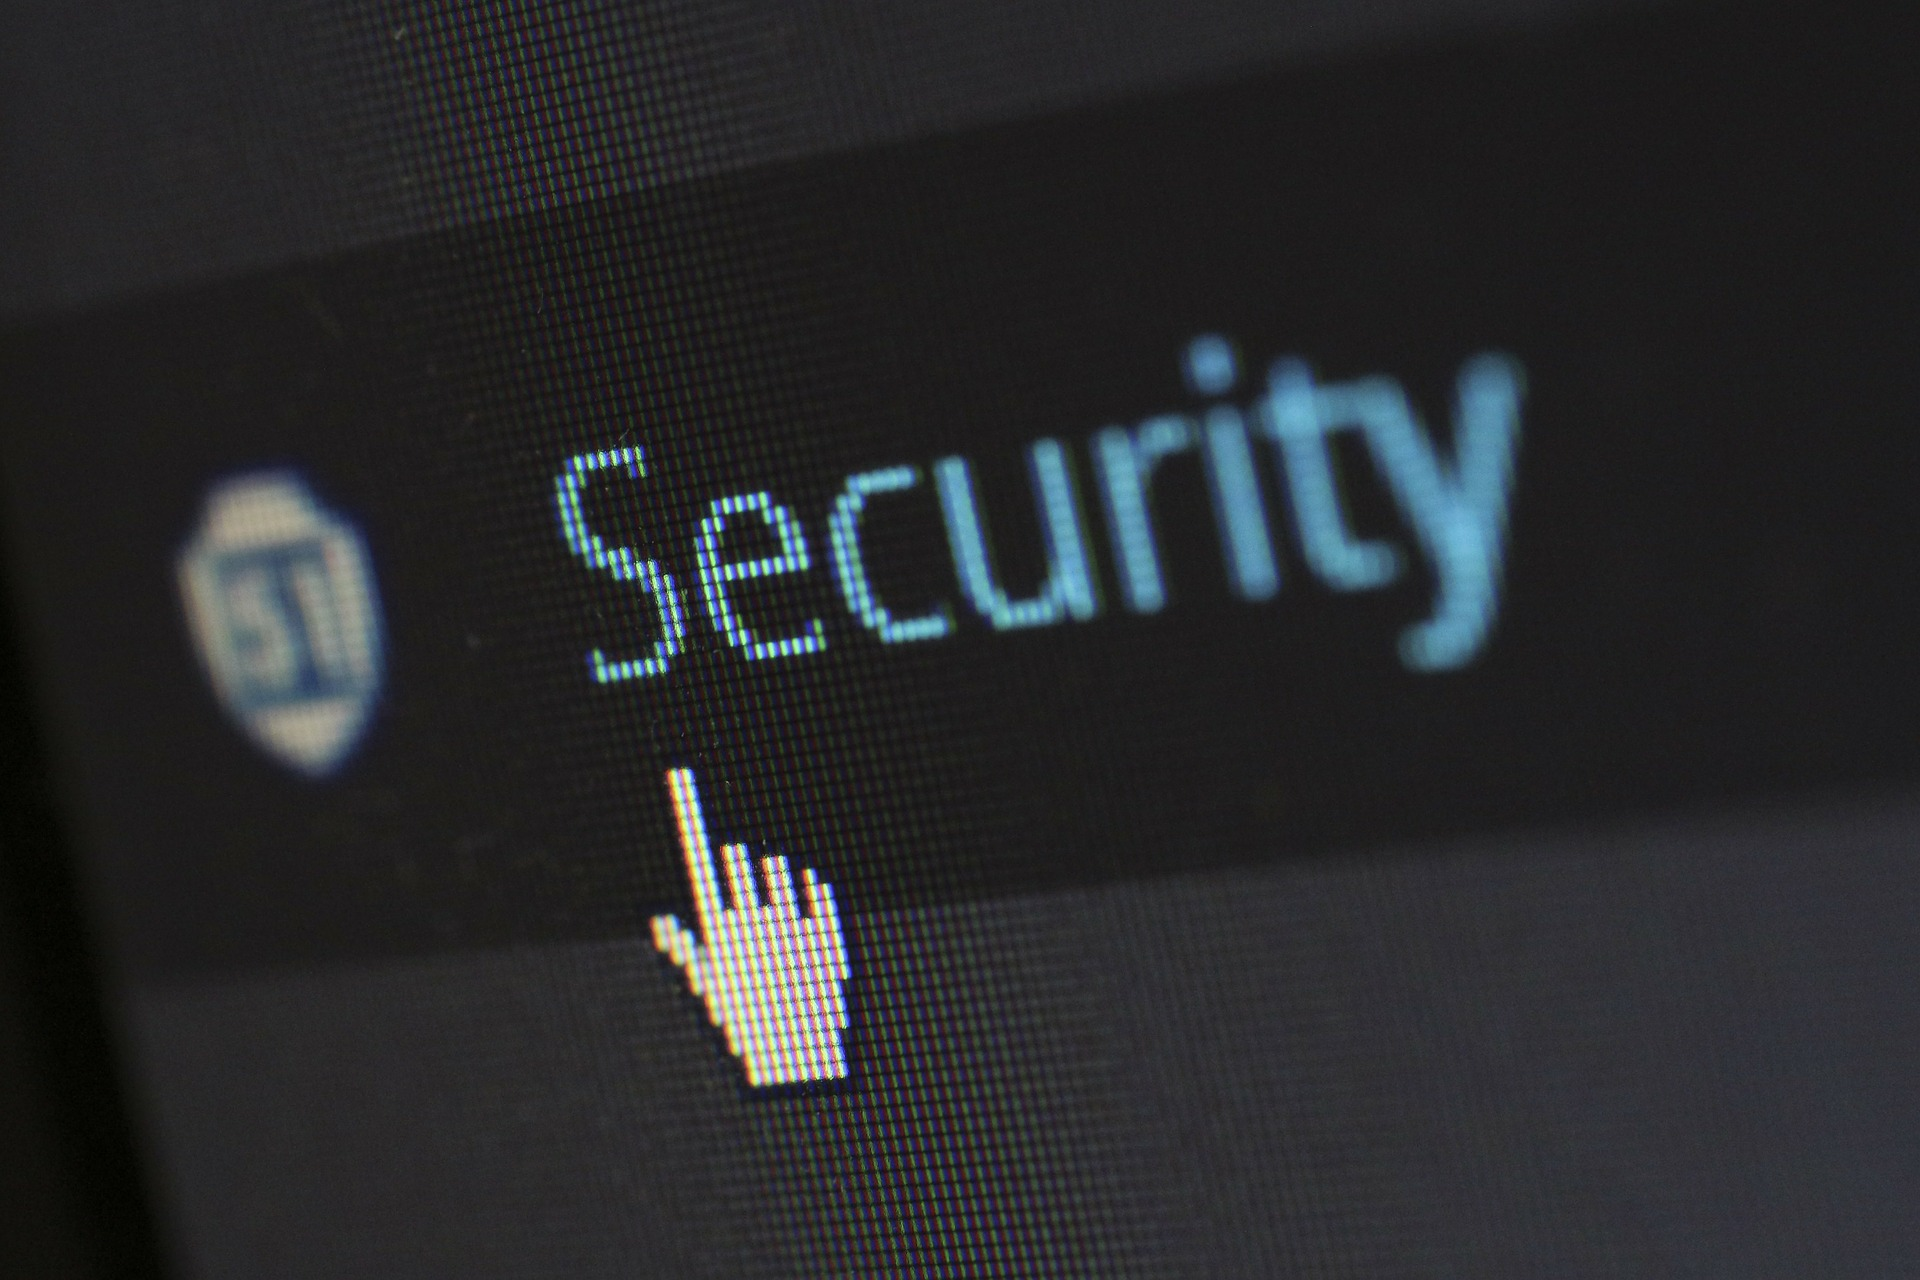 How to Protect Your WordPress Website From Being Hacked (In 4 Simple Steps)